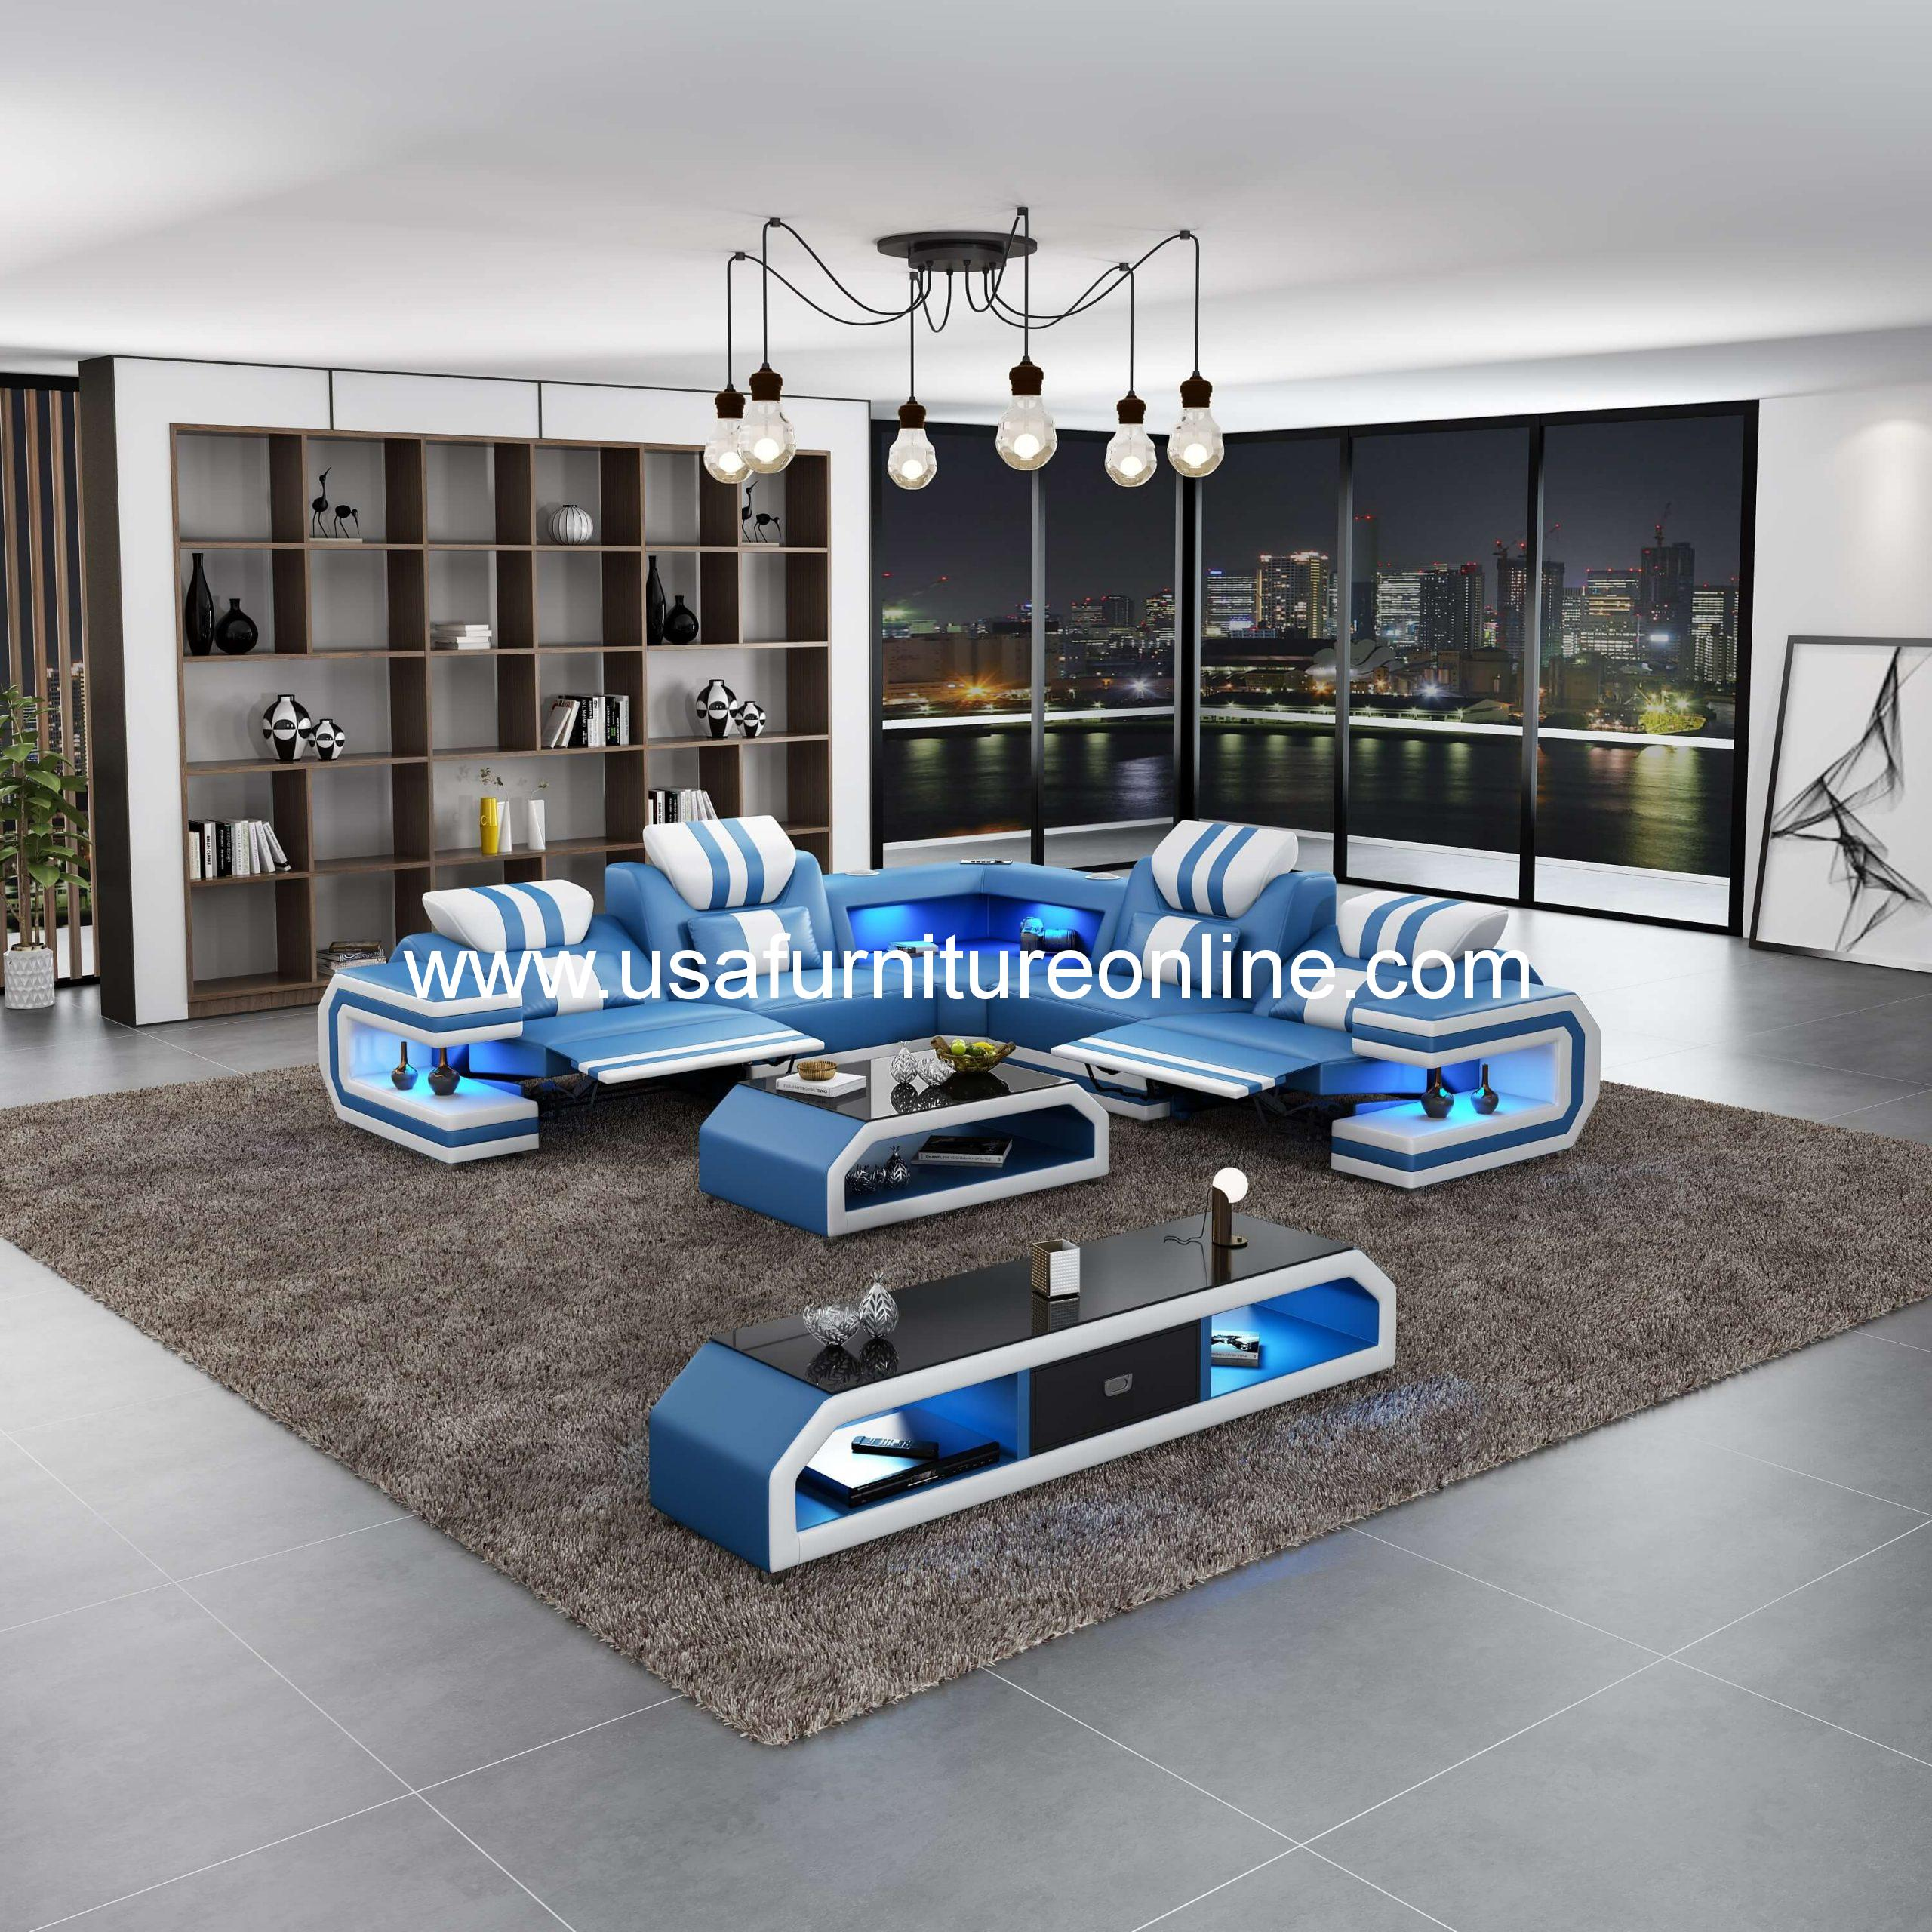 European Furniture Lightsaber Led Sectional Dual Recliners Italian Leather Blue White Usa Furniture Online